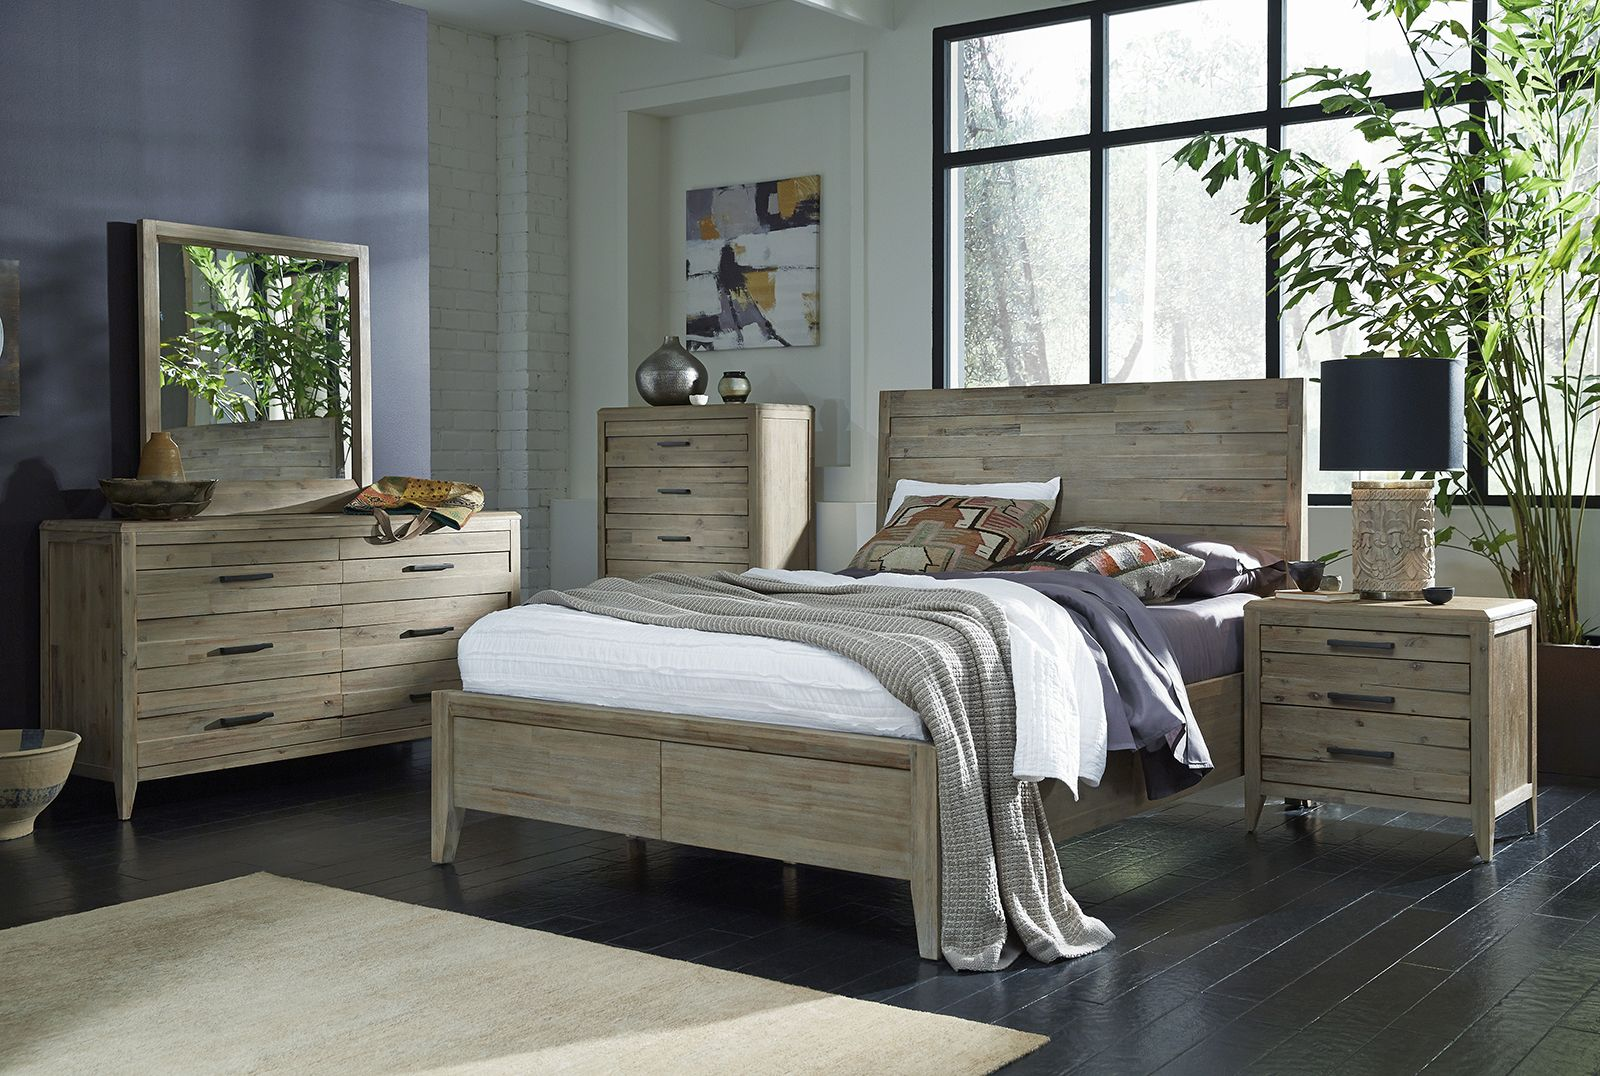 riverside furniture summerhill sleigh bedroom collection bedrooms rh pinterest com